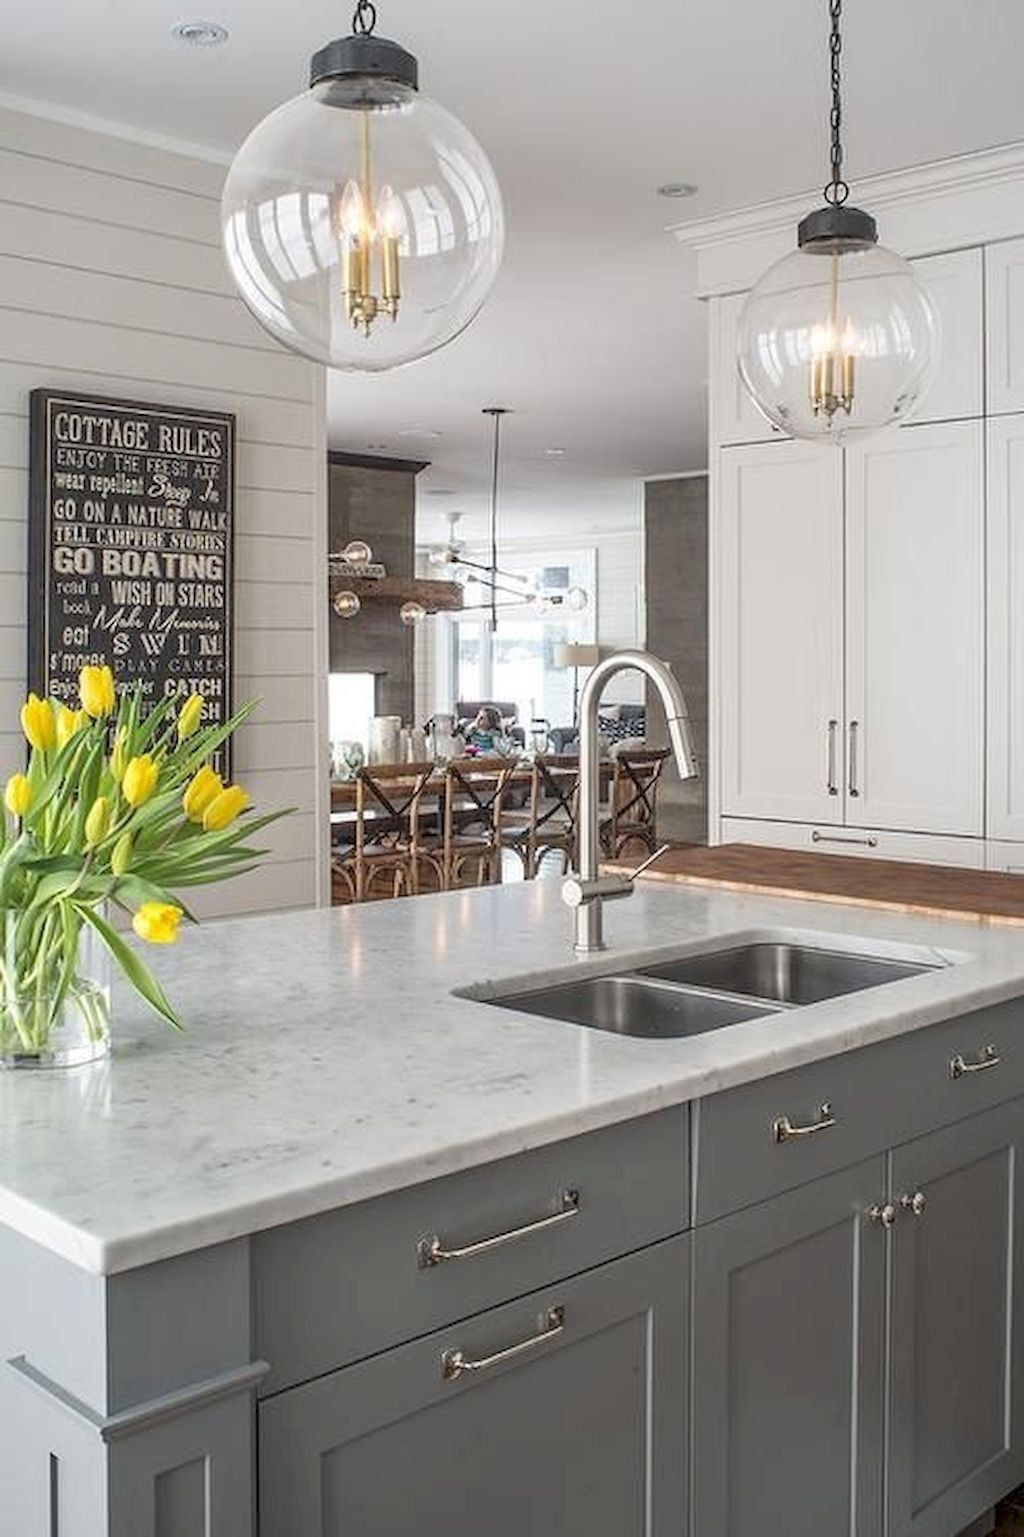 stylish gray kitchen cabinet design ideas44 marble kitchen island kitchen renovation kitchen on kitchen cabinets grey and white id=48204